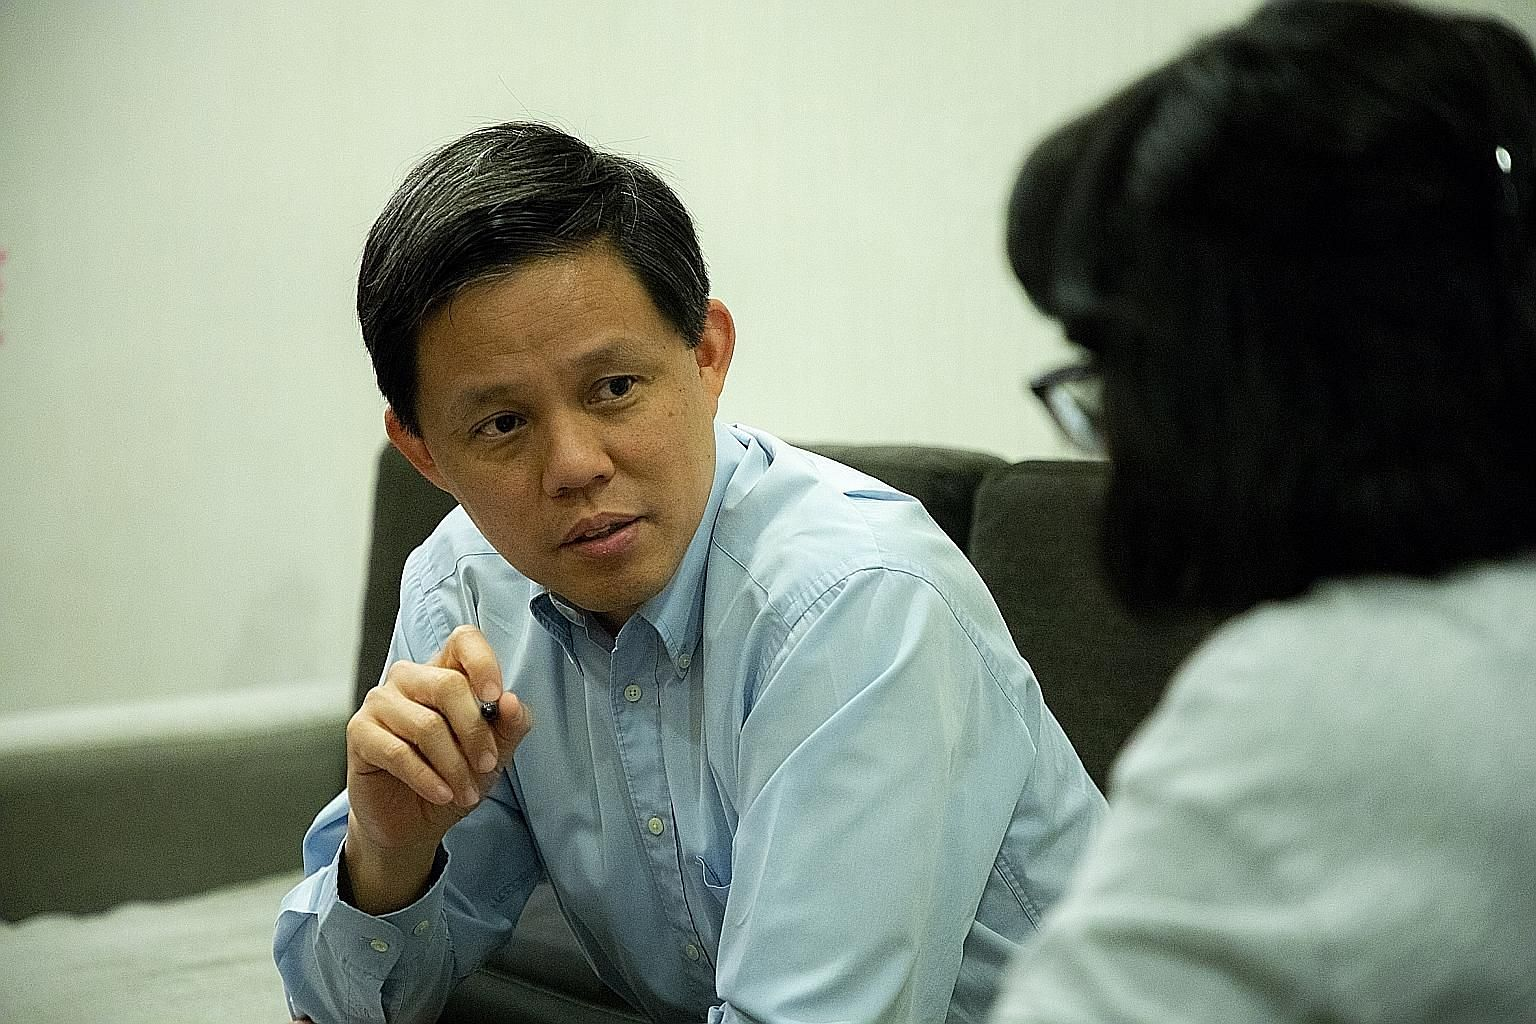 Minister-in-charge of the Public Service Chan Chun Sing spoke to The Sunday Times in an interview during Public Service Week, which ends today.